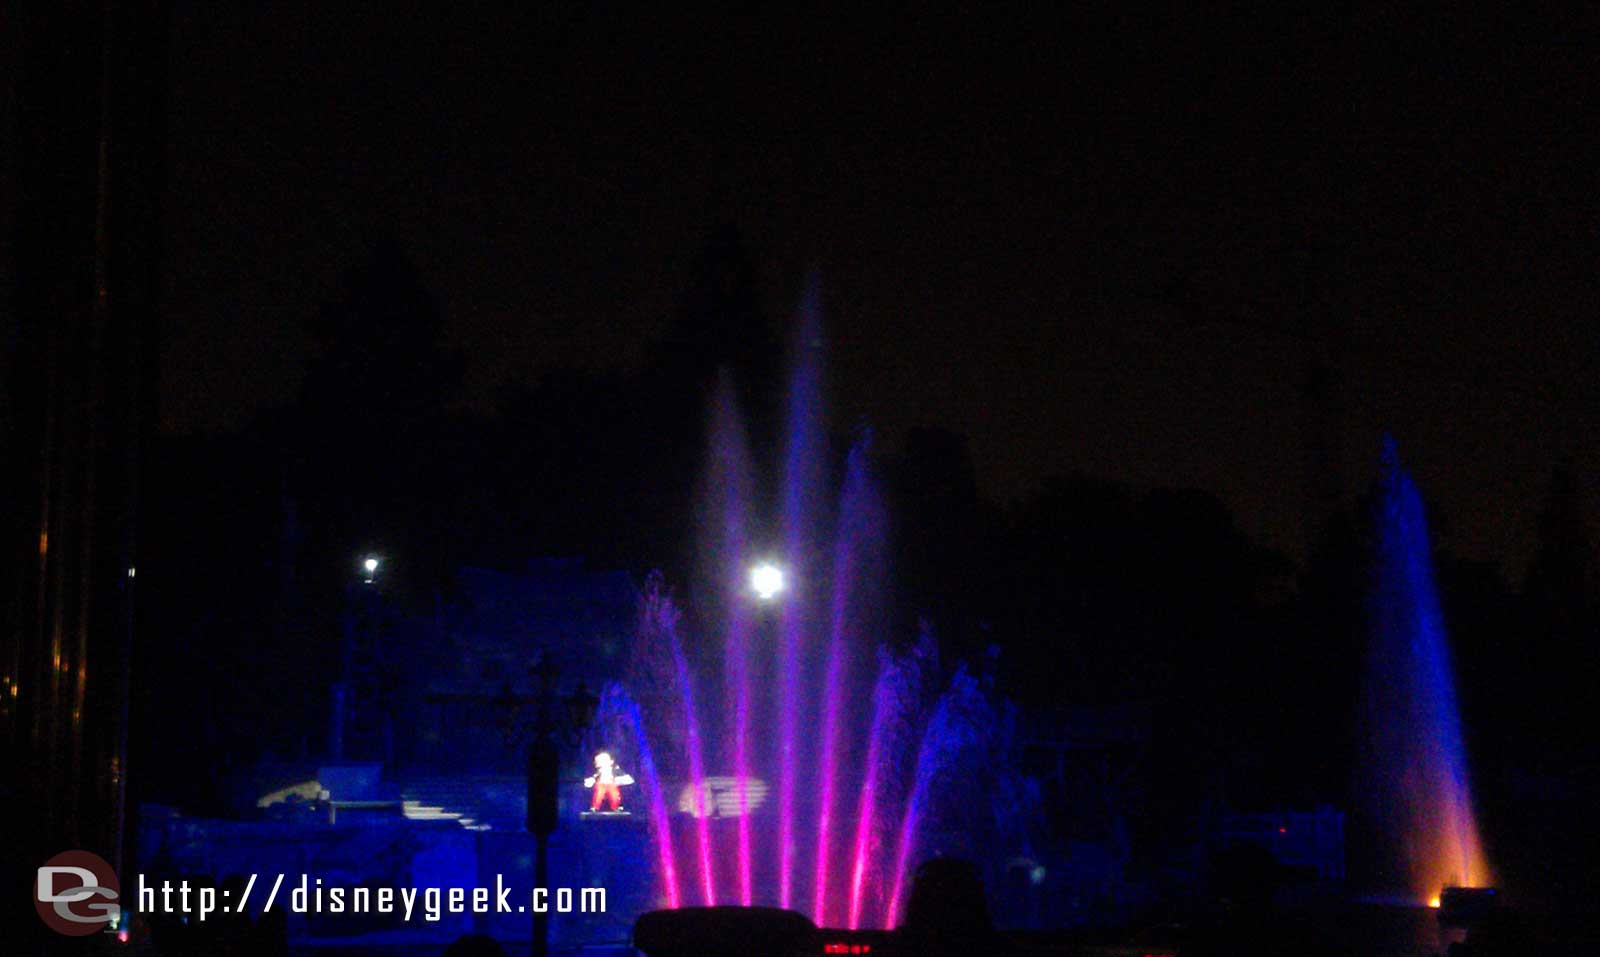 Time for Fantasmic